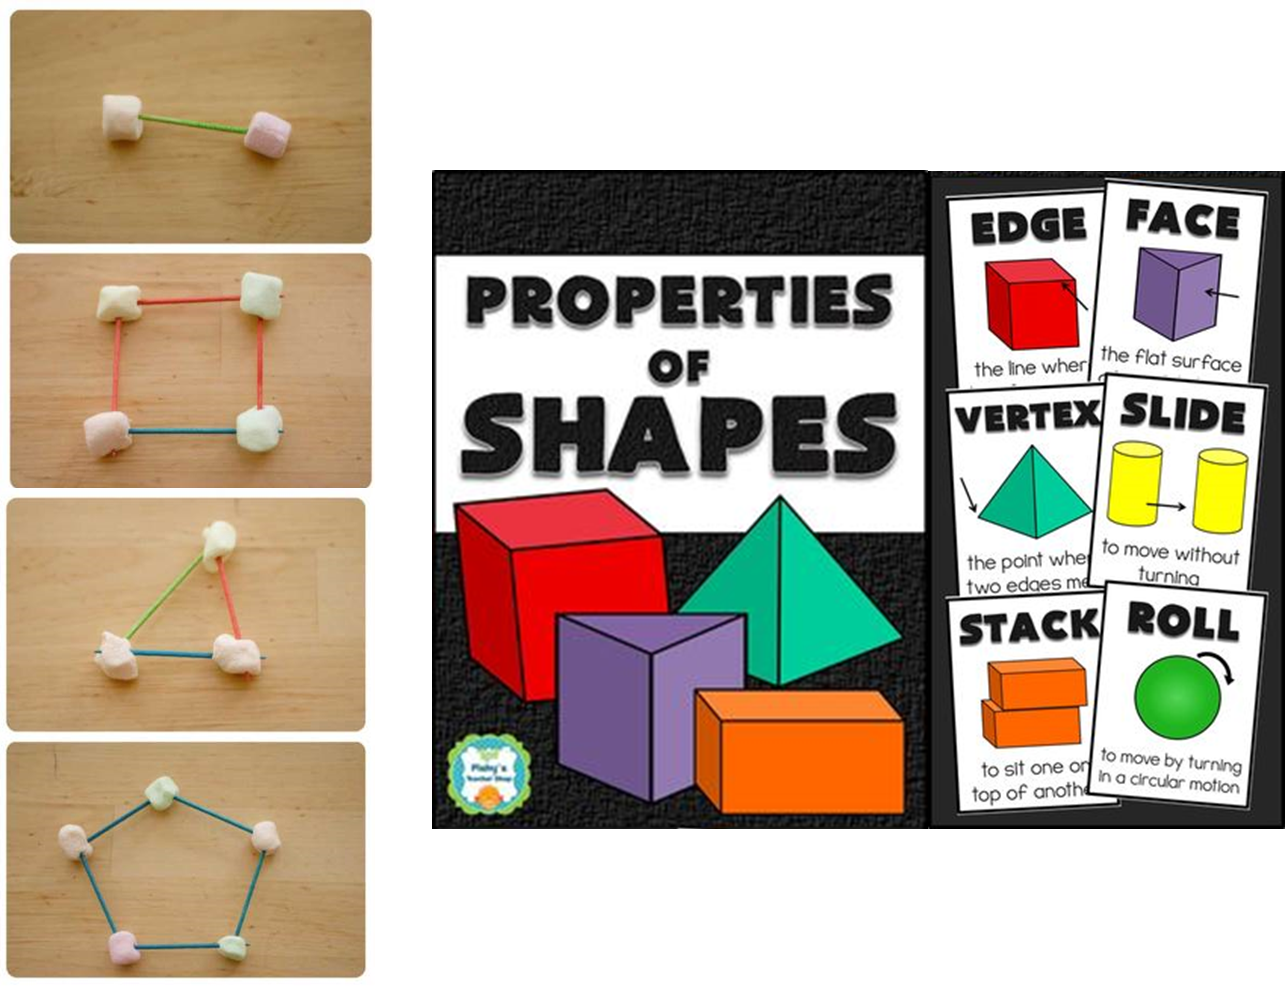 http://www.teacherspayteachers.com/Product/Properties-of-Shapes-Posters-Face-Edge-Vertex-Slide-Stack-Roll-1061209